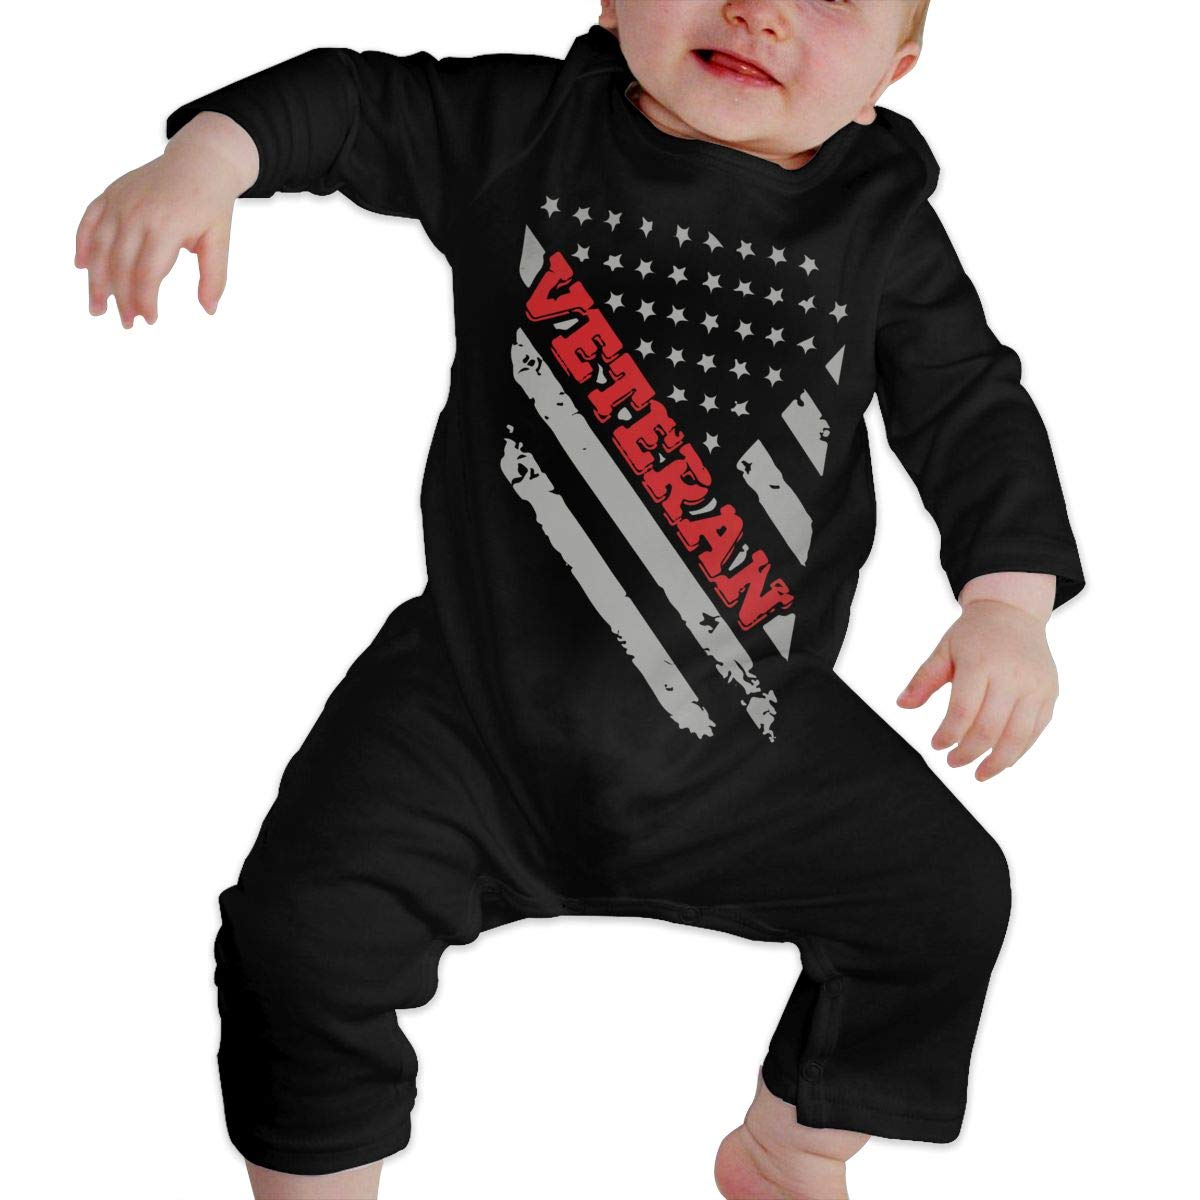 LBJQ8 Veteran Flag1-1 Infant Baby Boy Girl Organic Cotton Romper Jumpsuit